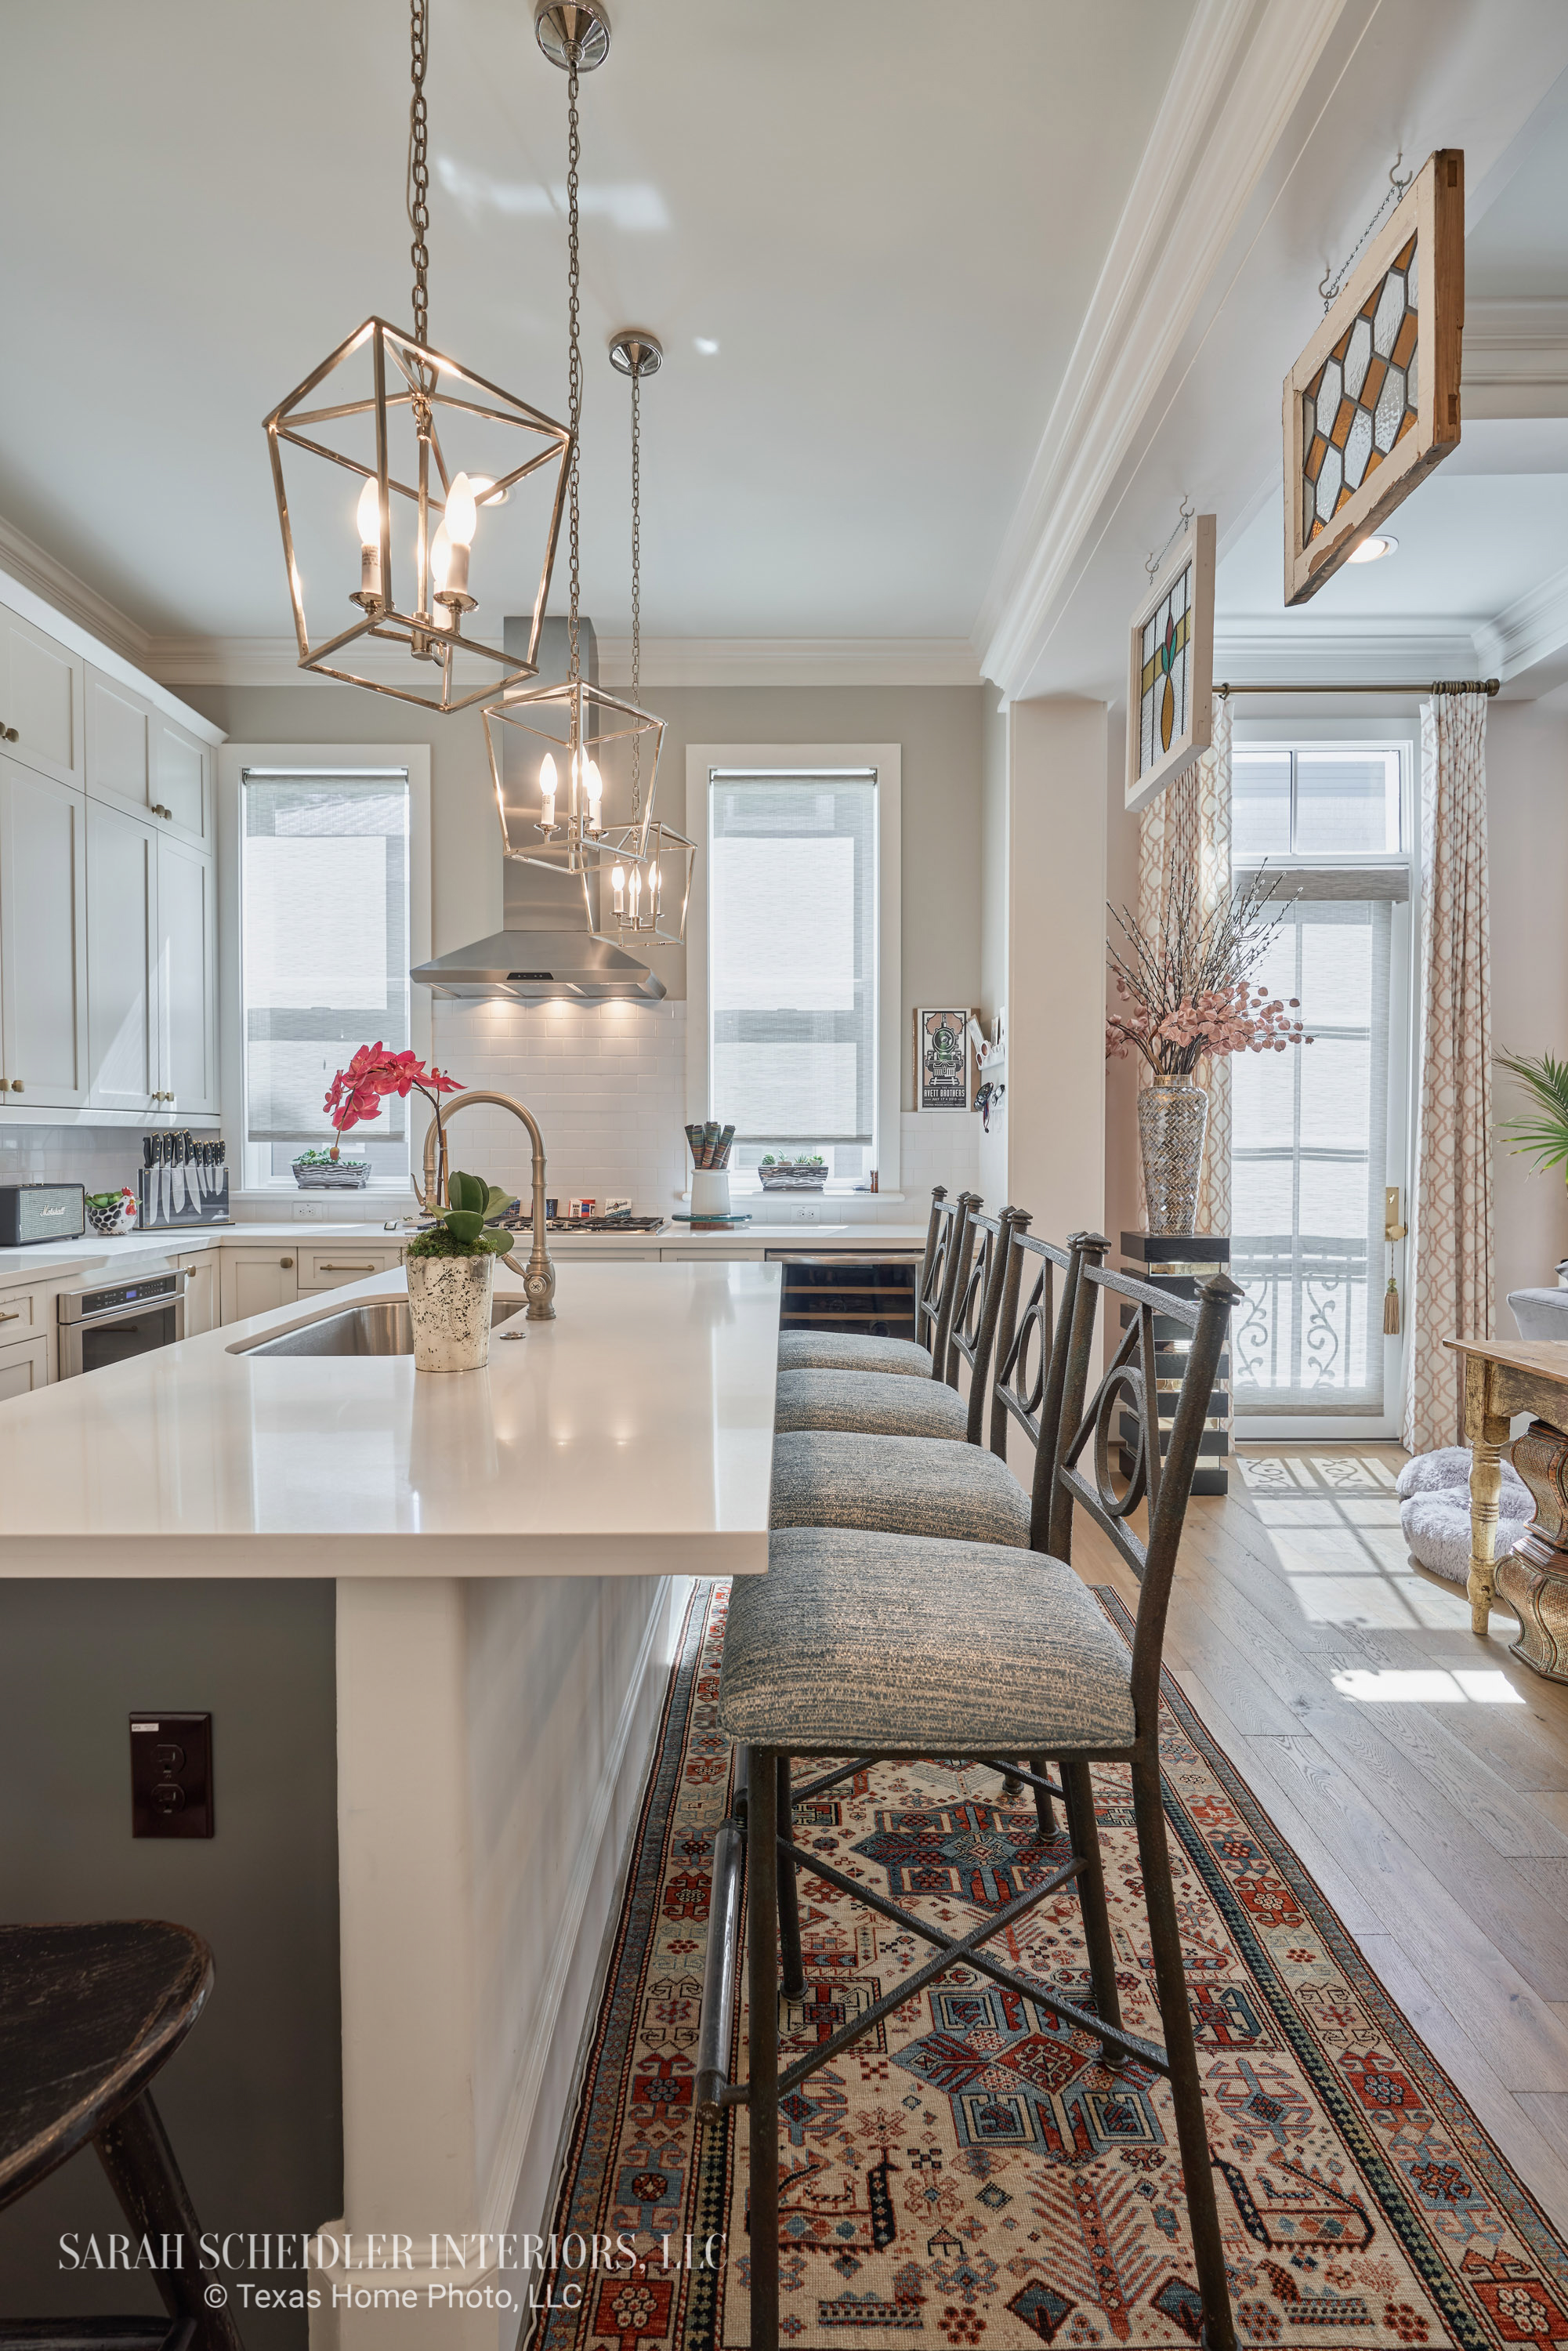 Open-Concept White Kitchen and Living Room Design with Pops of Color, Stained Glass Decorative Accents, Reupholstered Bar Stools, Sheer Custom Shades, Custom Living Room Drapes, and Faux Florals